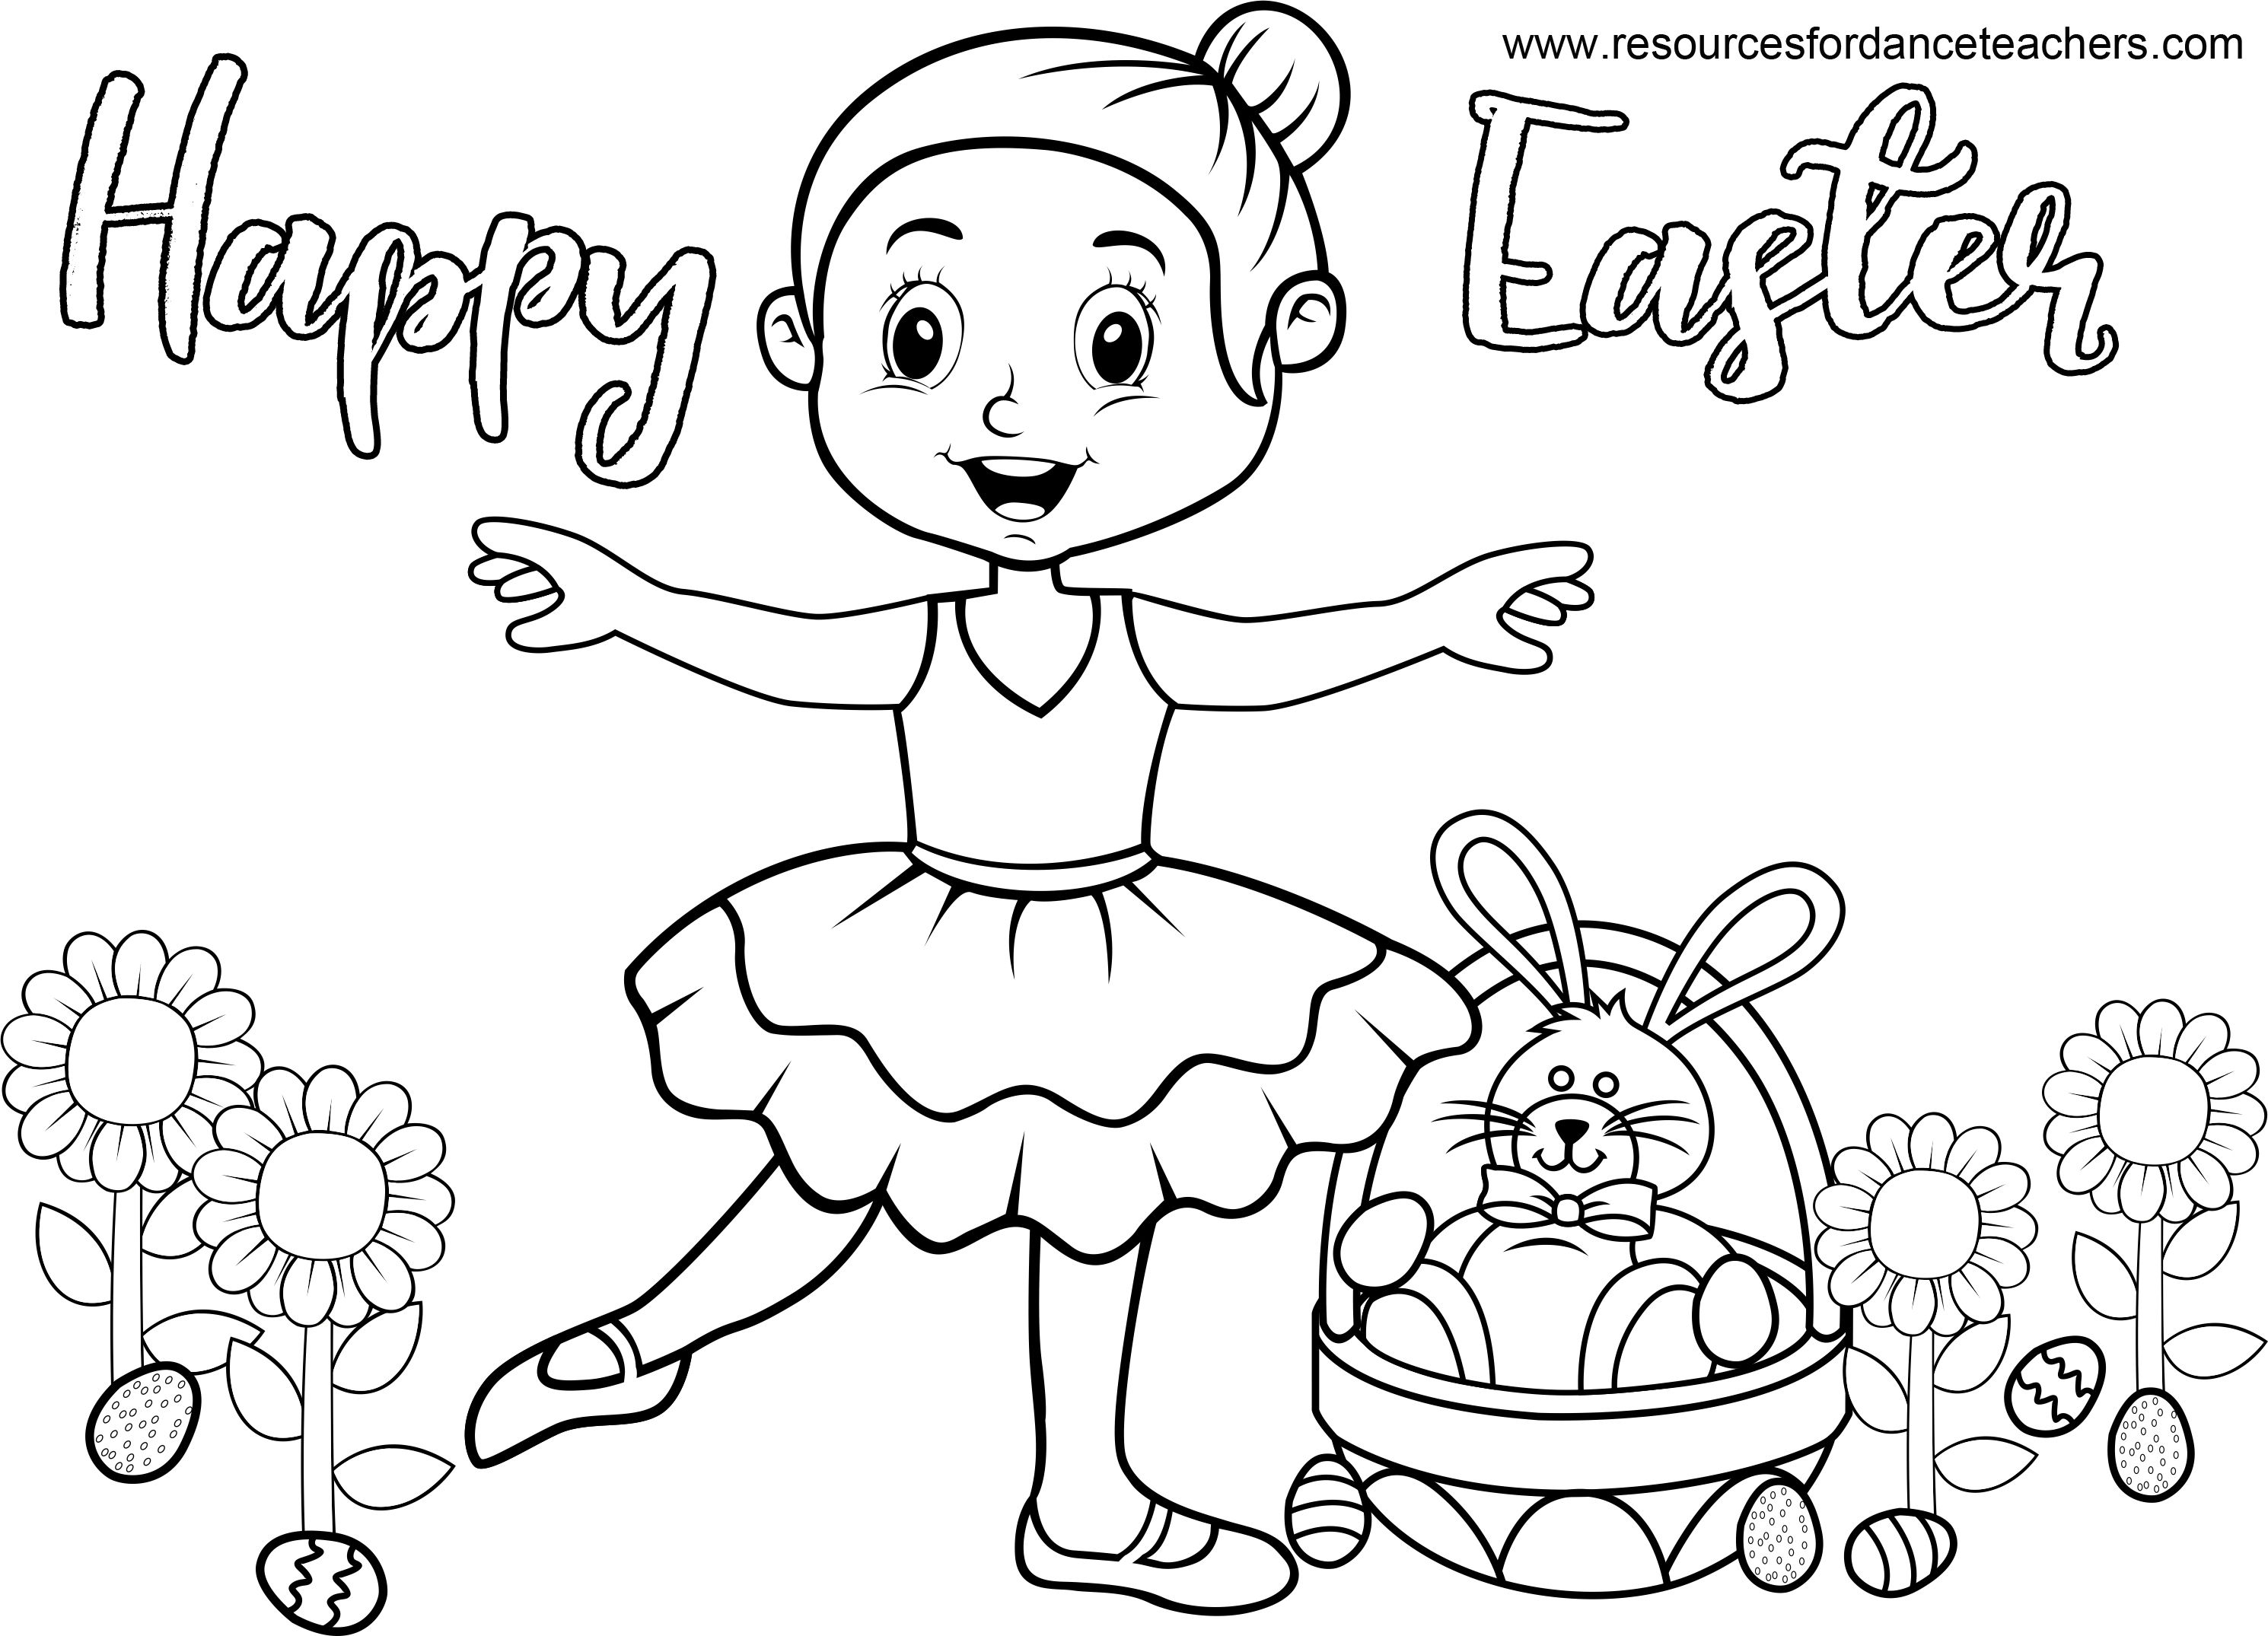 Top 5 Preschool Dance Easter Songs And Activities Dance Coloring Pages Easter Songs Coloring Sheets